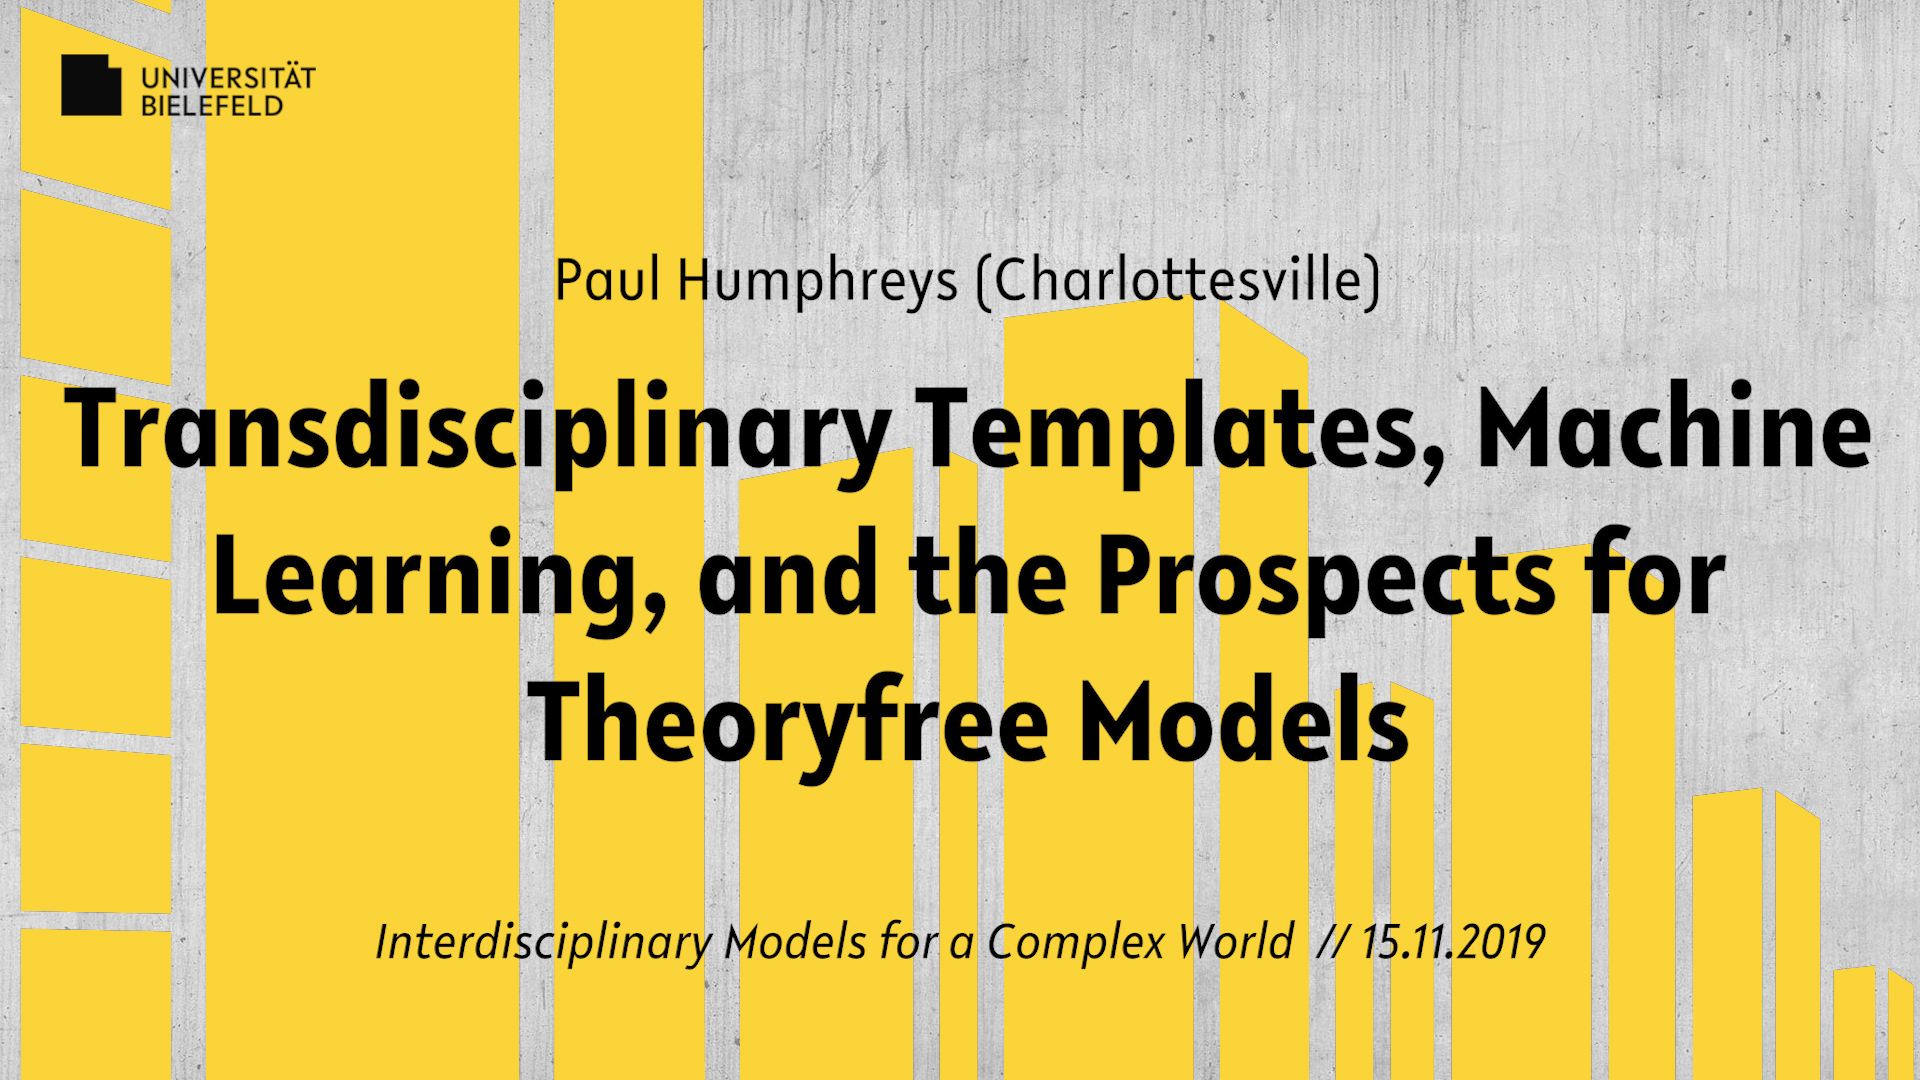 Transdisciplinary Templates, Machine Learning, and the Prospects for Theory-free Models